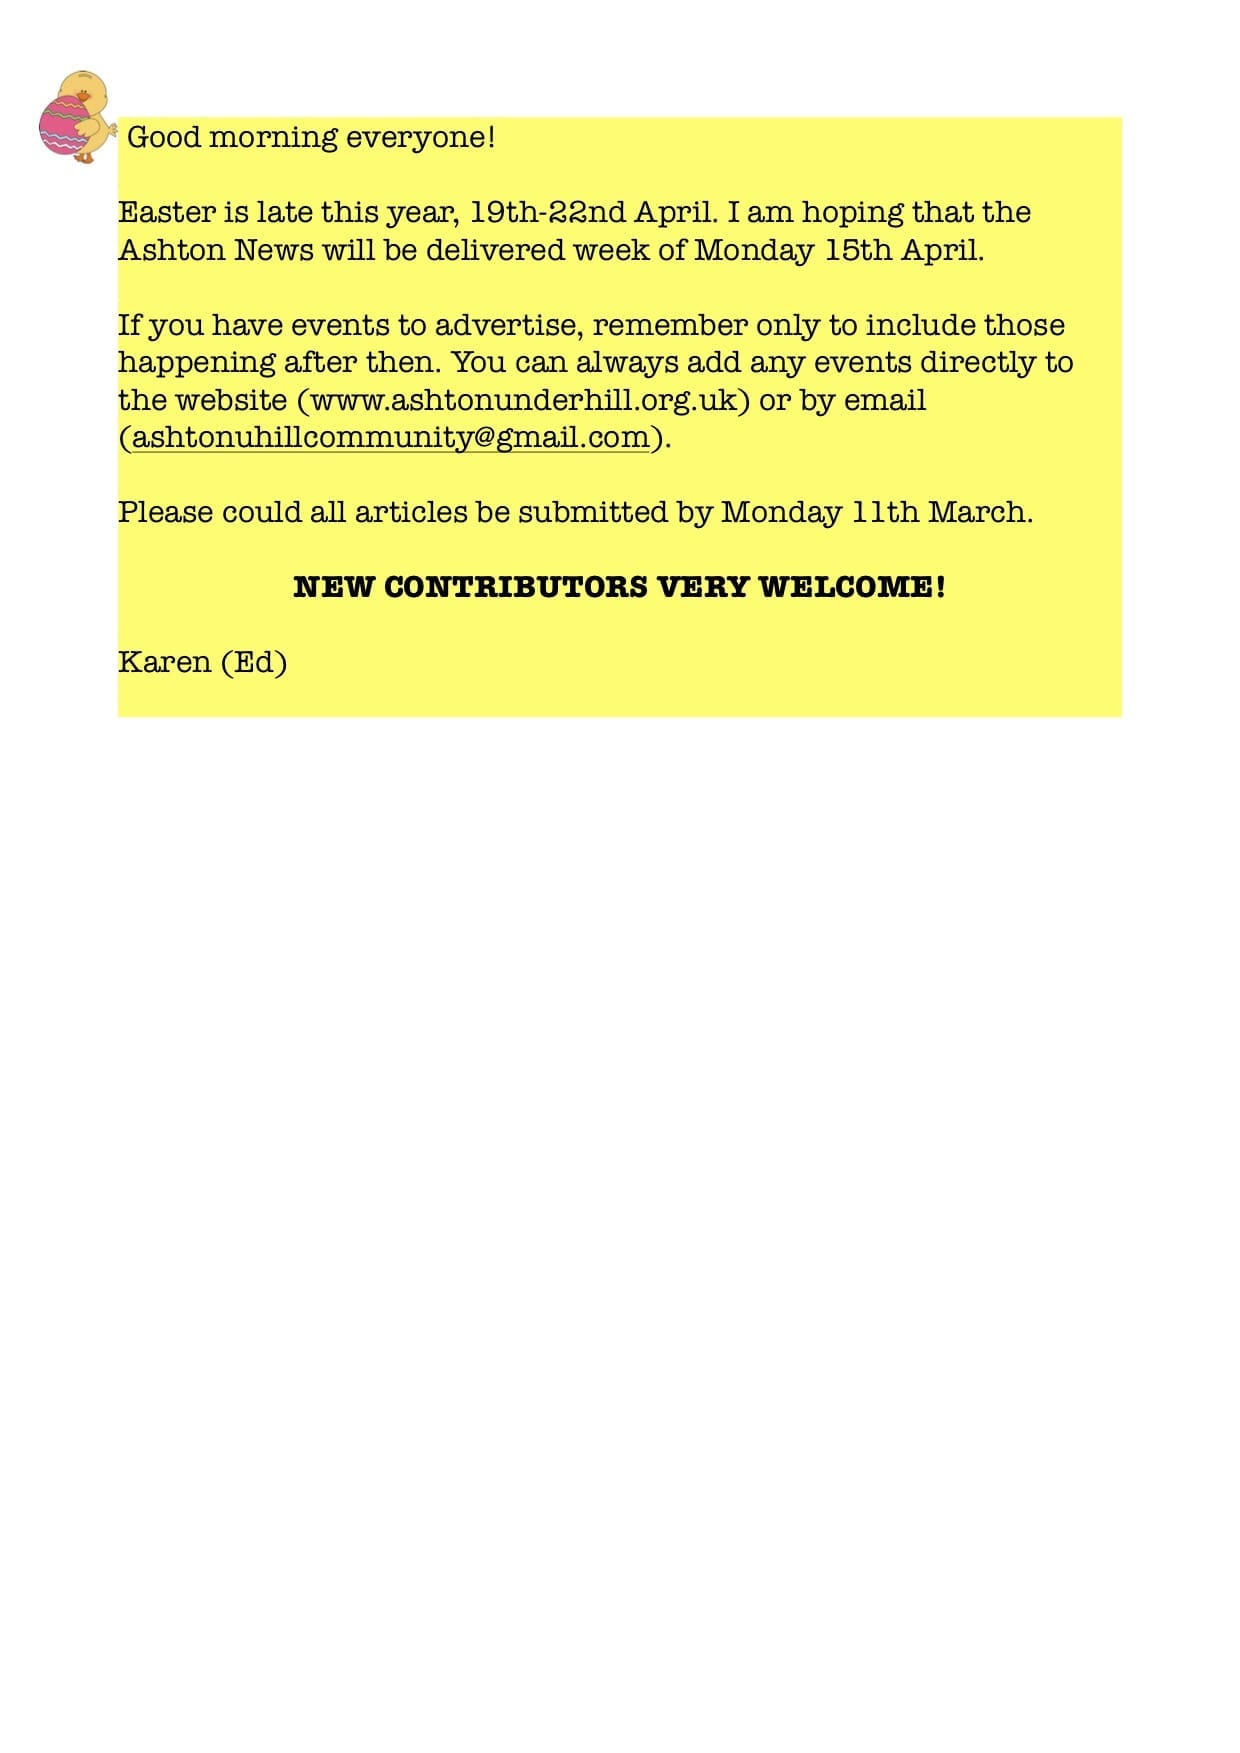 Your Ashton News articles needed!